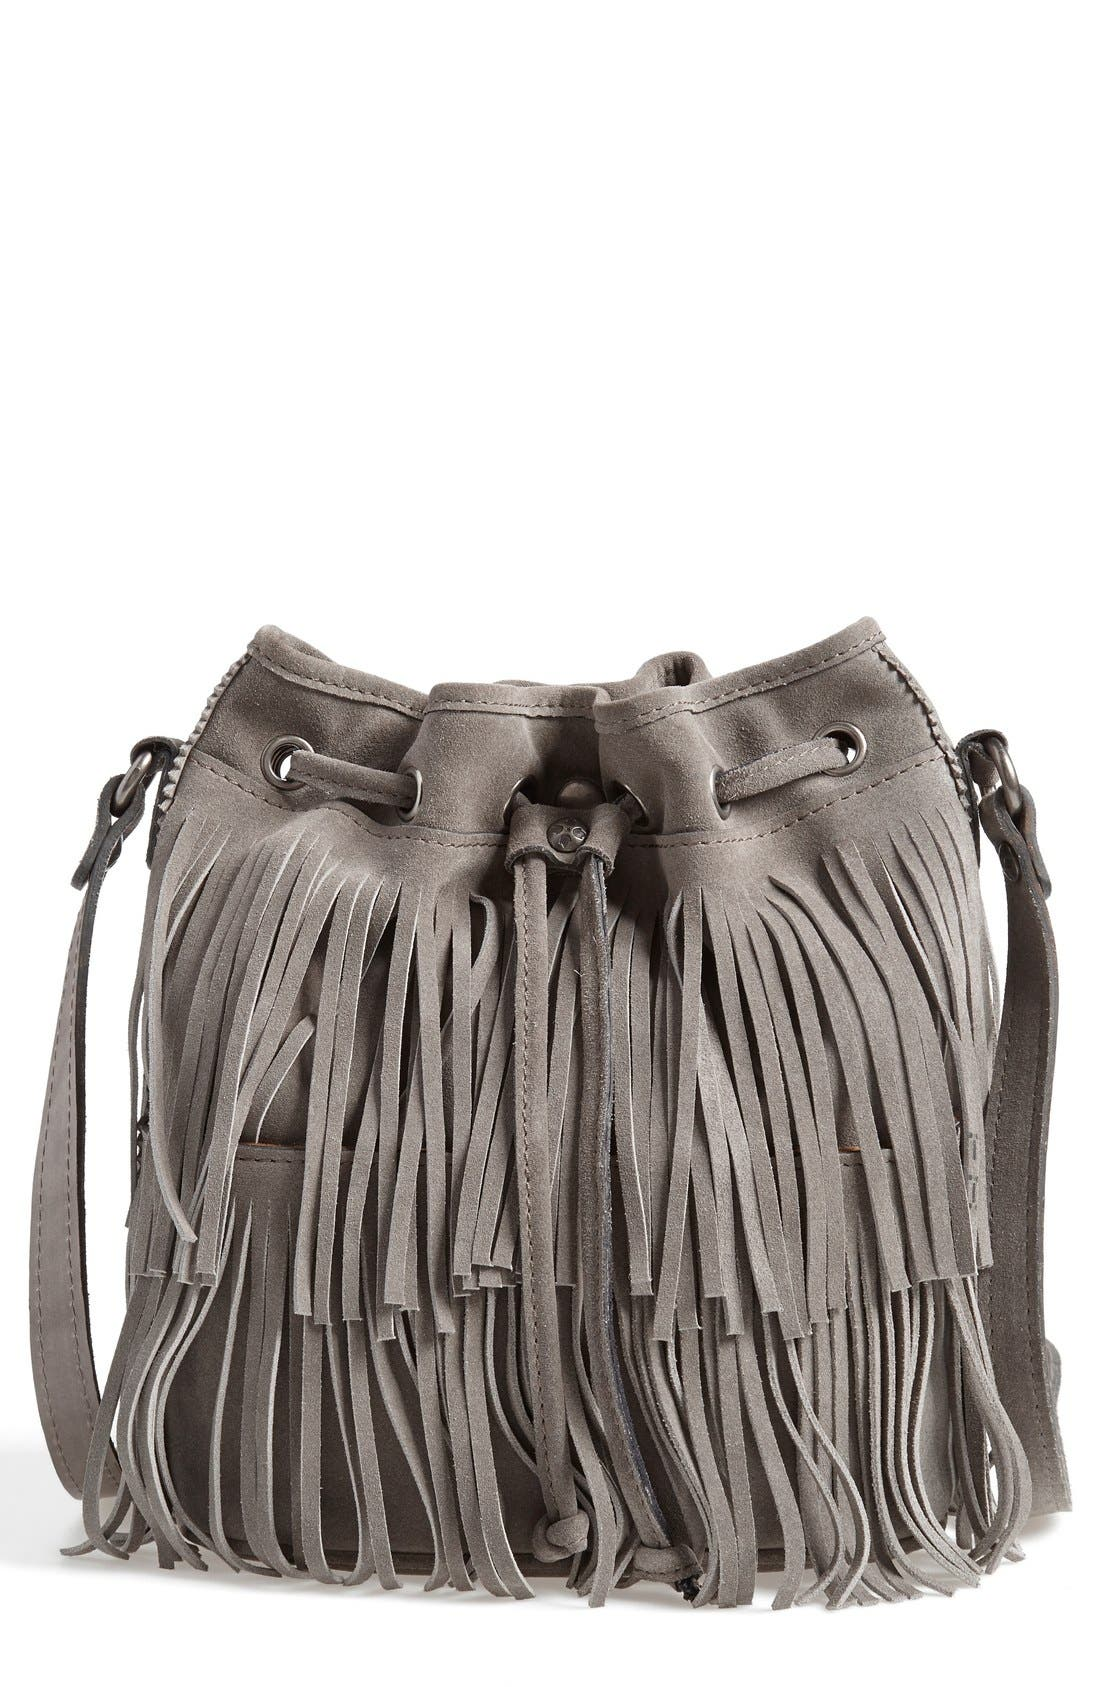 'Bronte' Fringe Bucket Bag,                             Main thumbnail 1, color,                             020